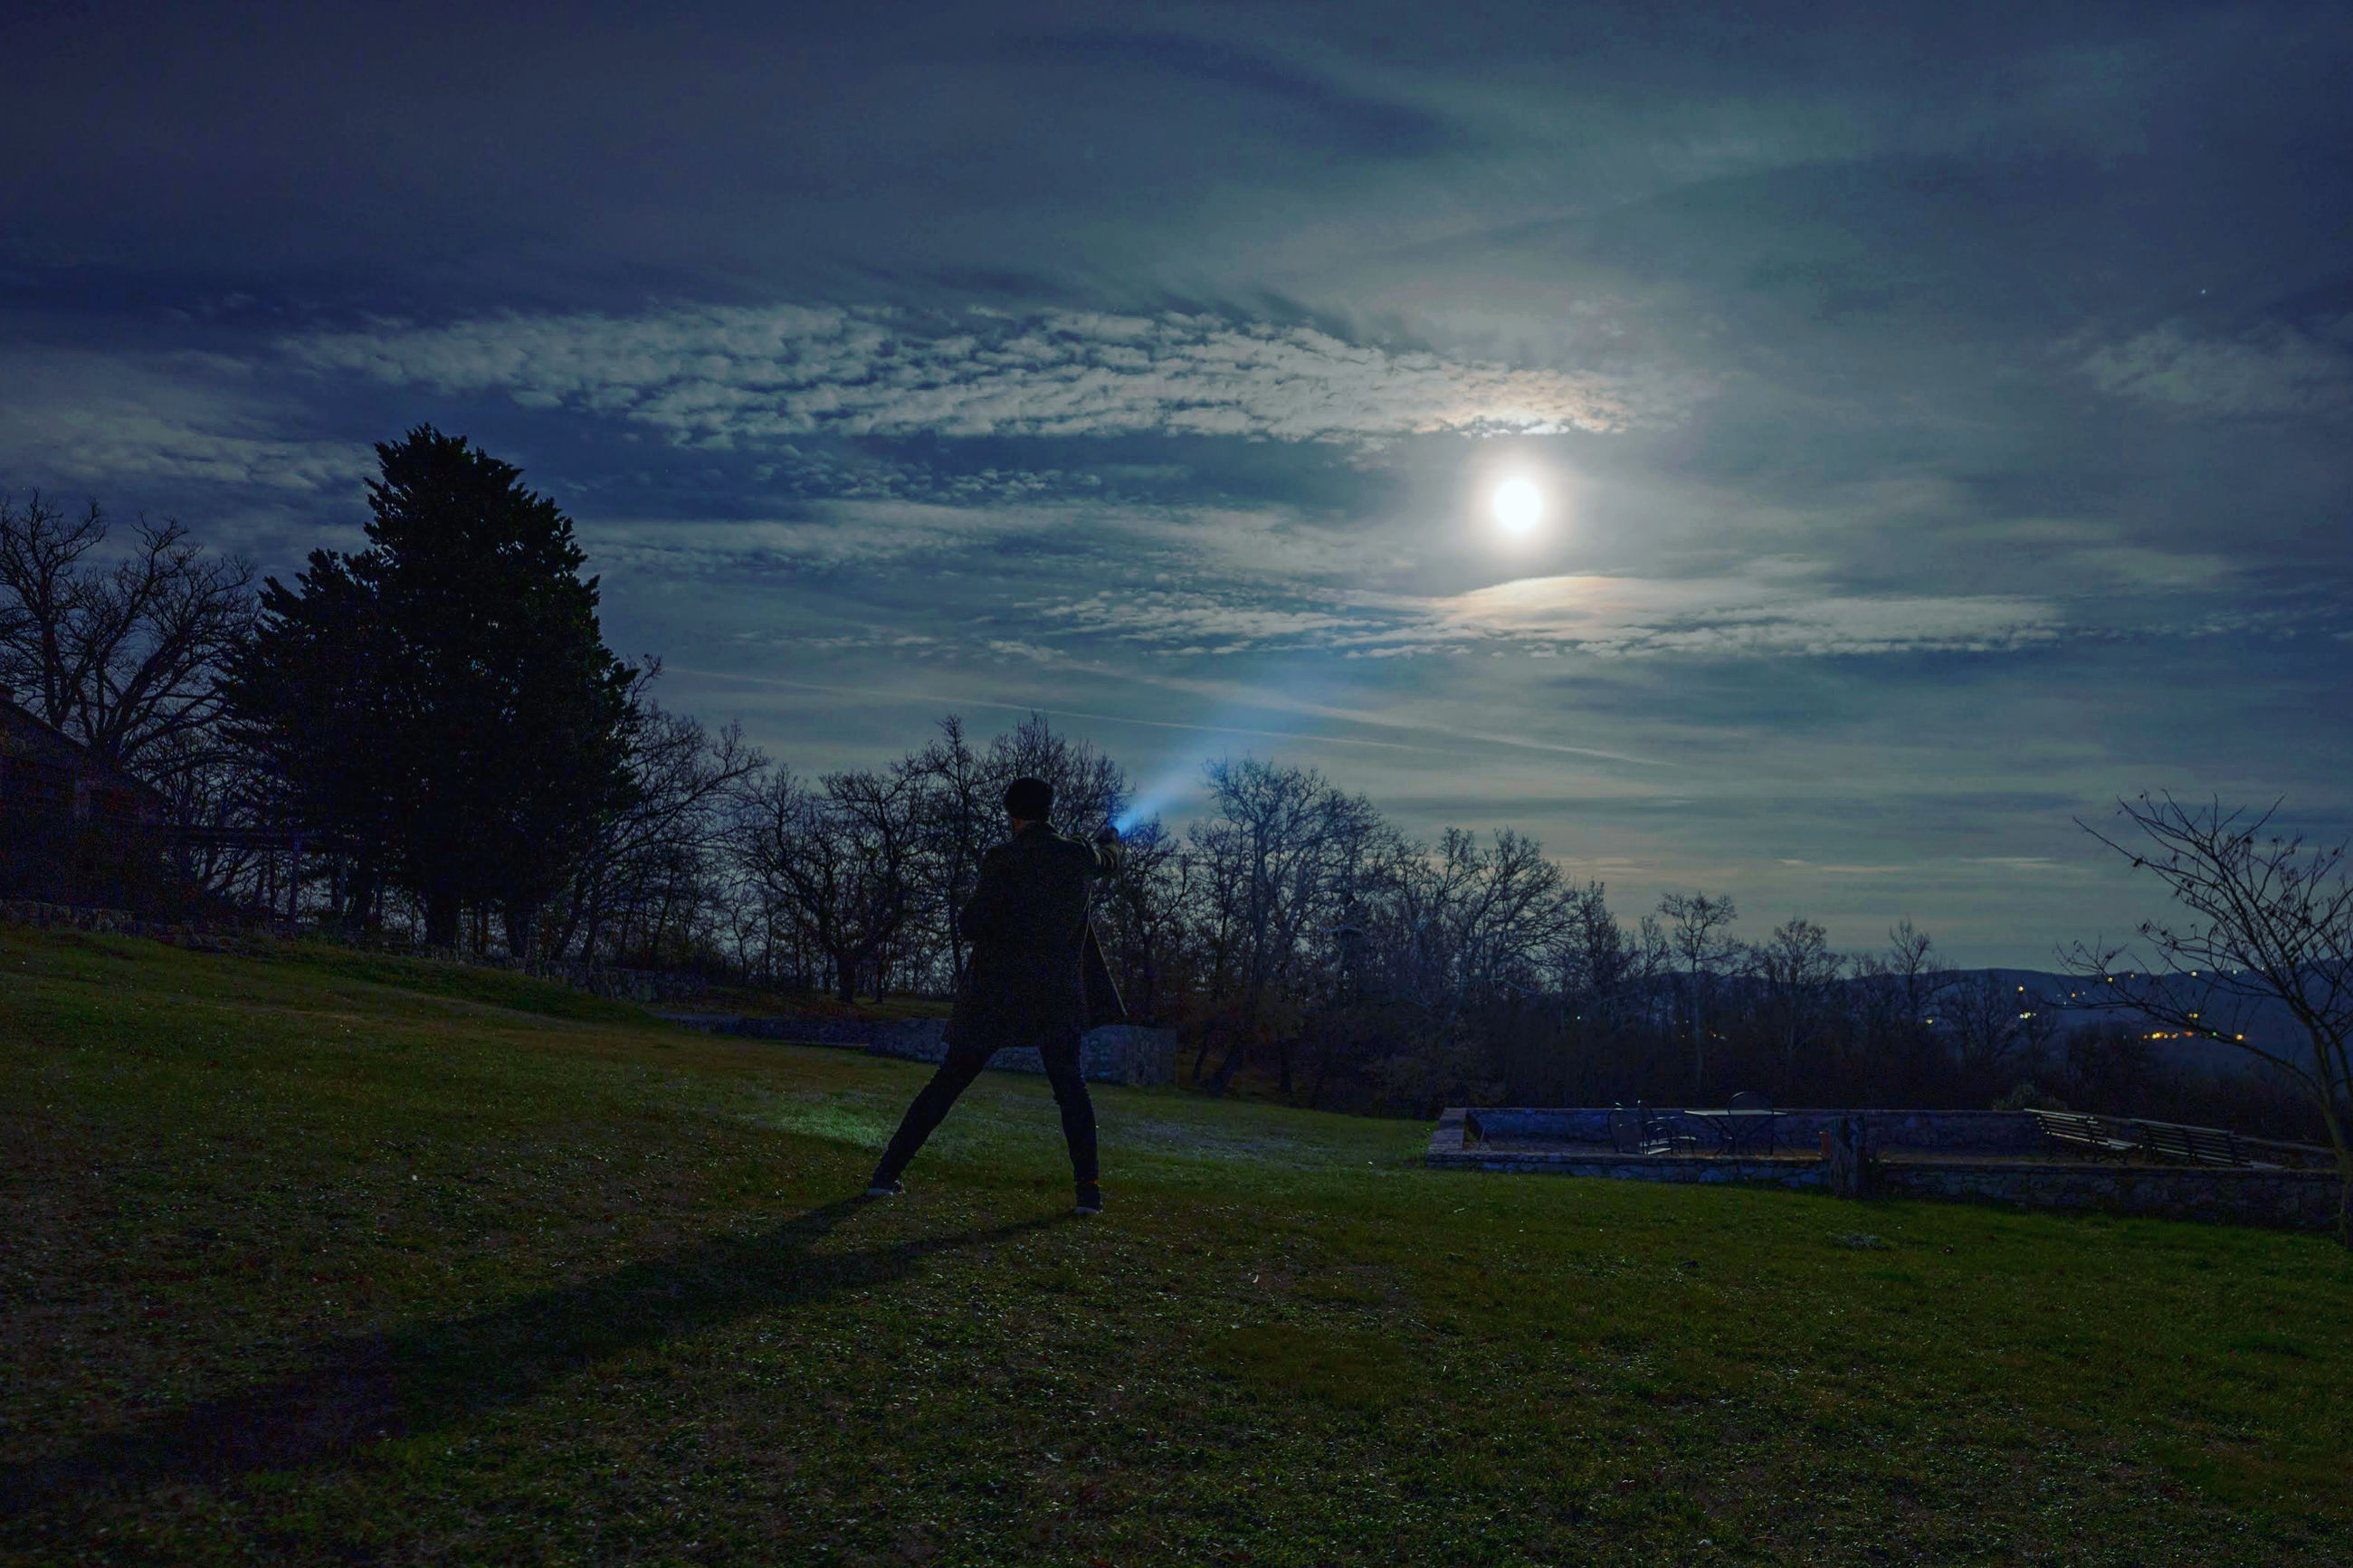 sky, plant, cloud - sky, one person, tree, grass, nature, full length, beauty in nature, land, real people, field, silhouette, lifestyles, standing, leisure activity, moon, sun, tranquility, outdoors